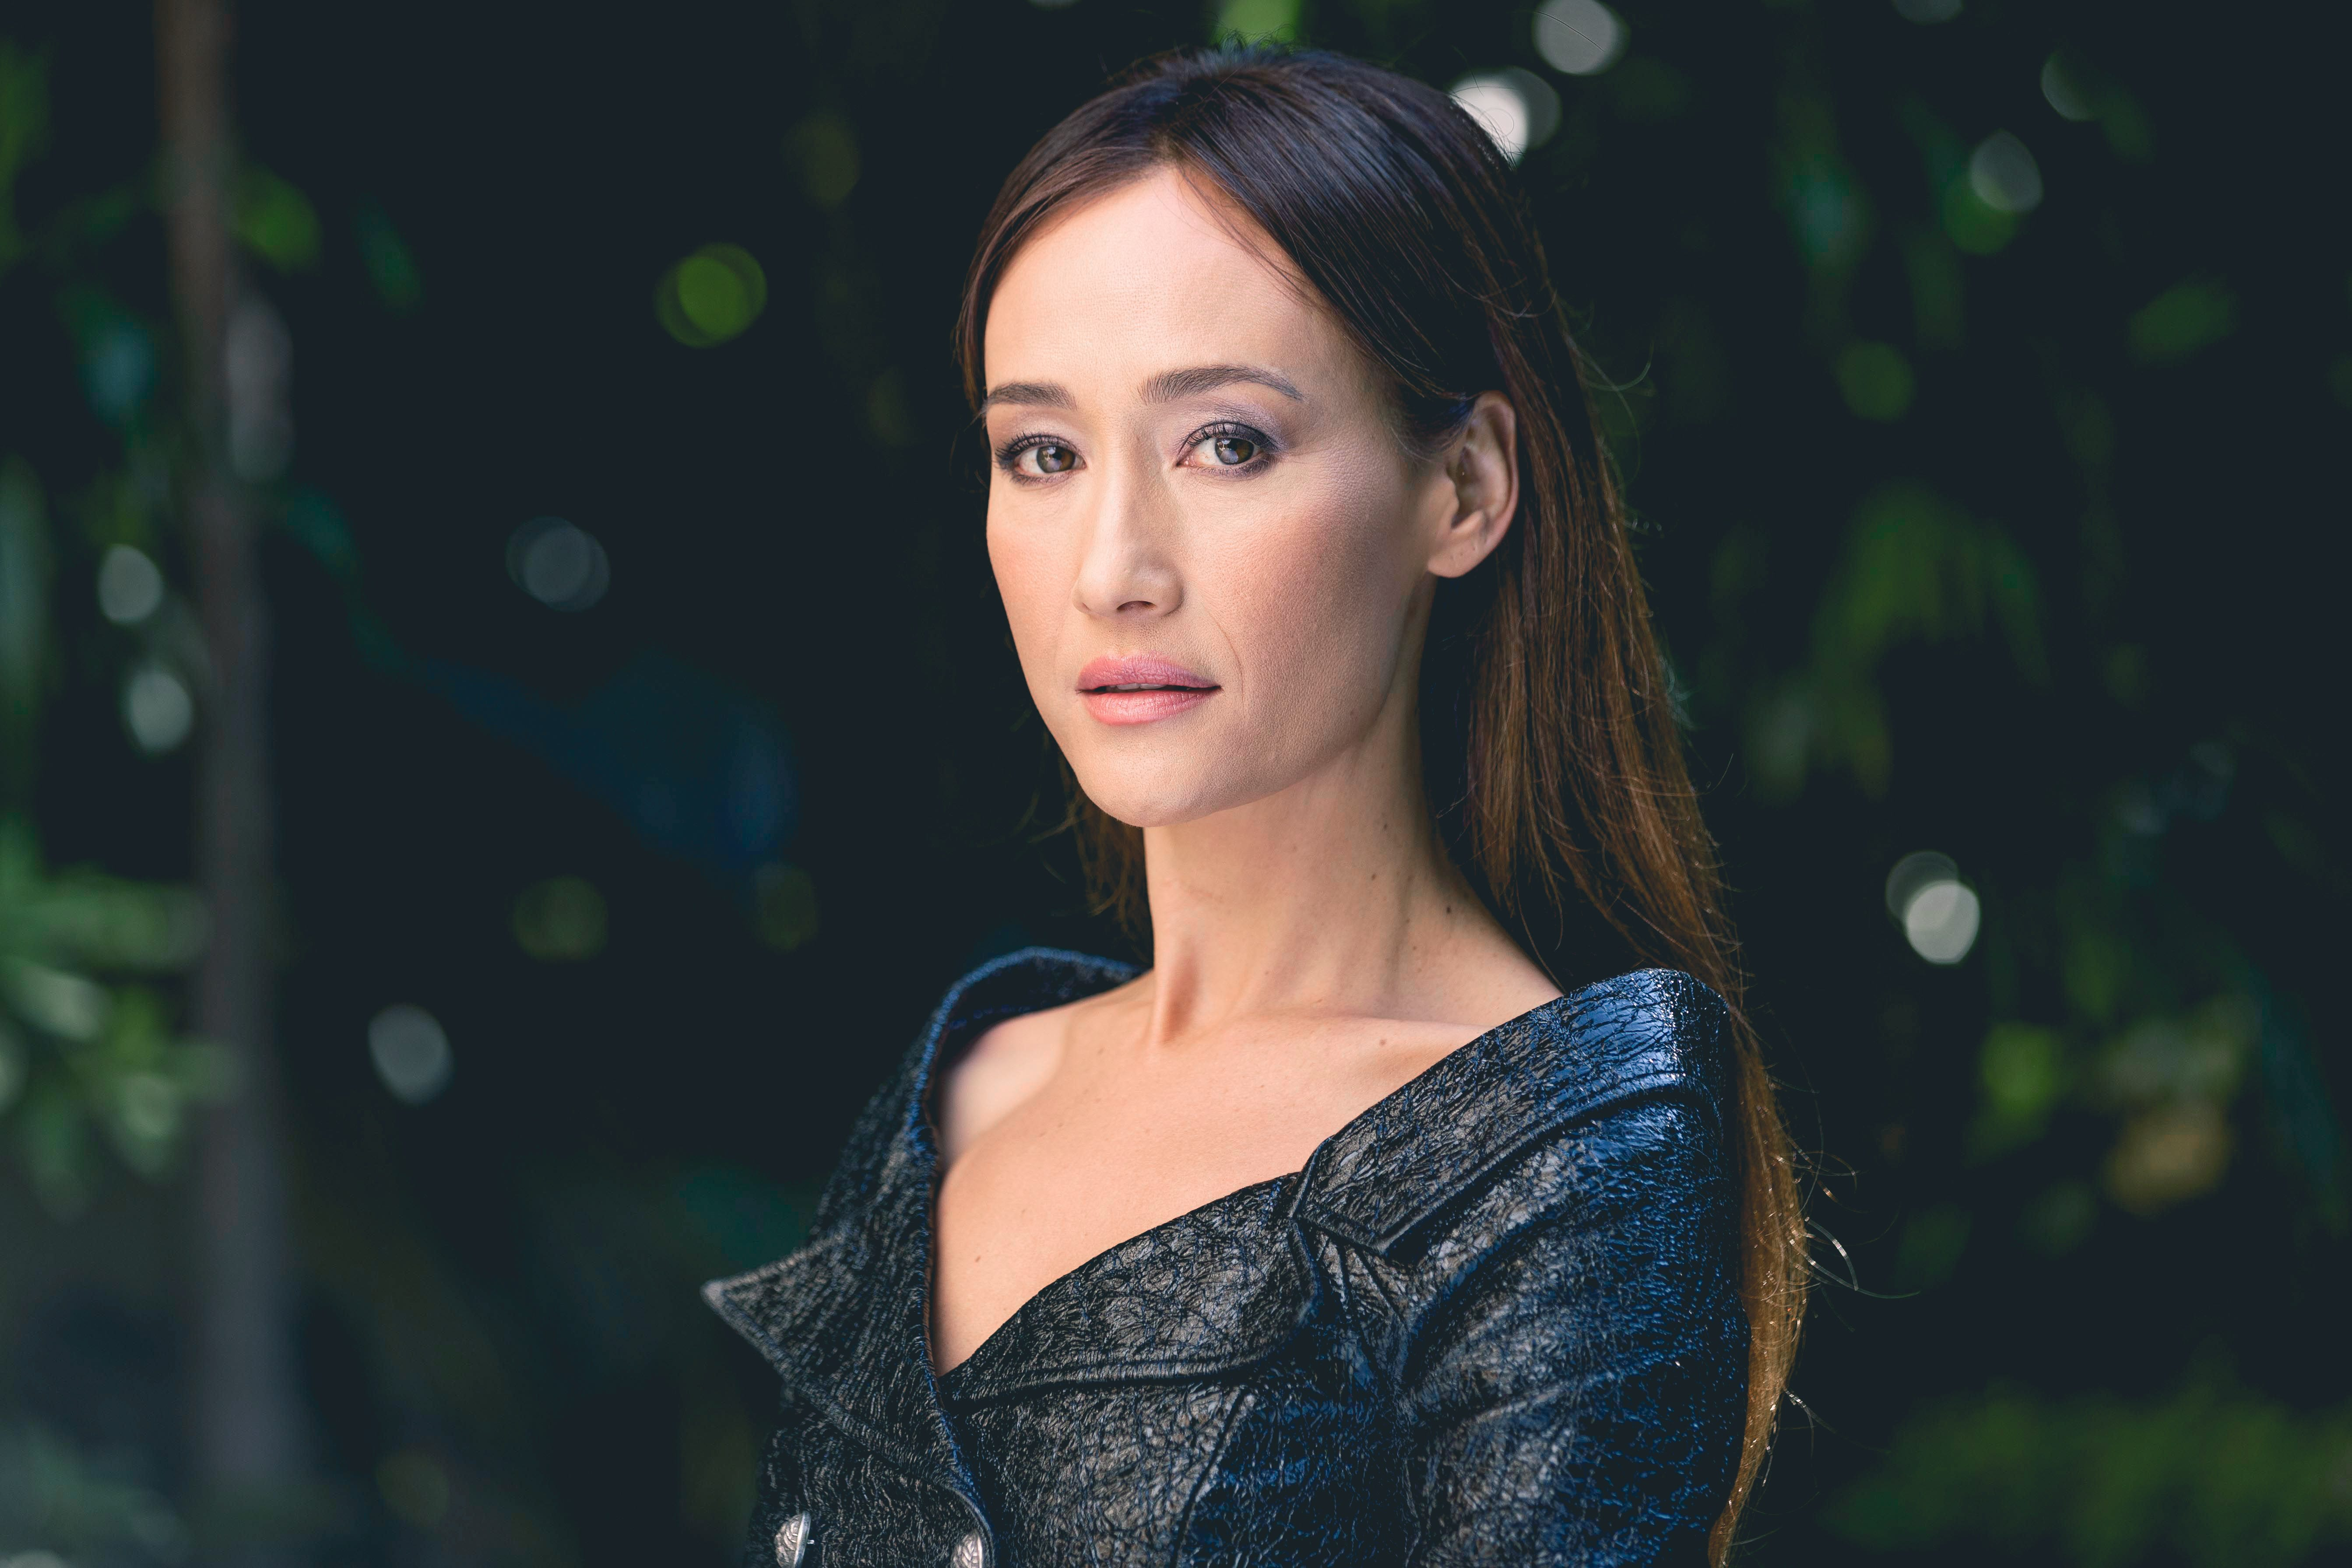 Maggie Q leaps into the spotlight: The action veteran finally gets her due as a movie star in  The Protege